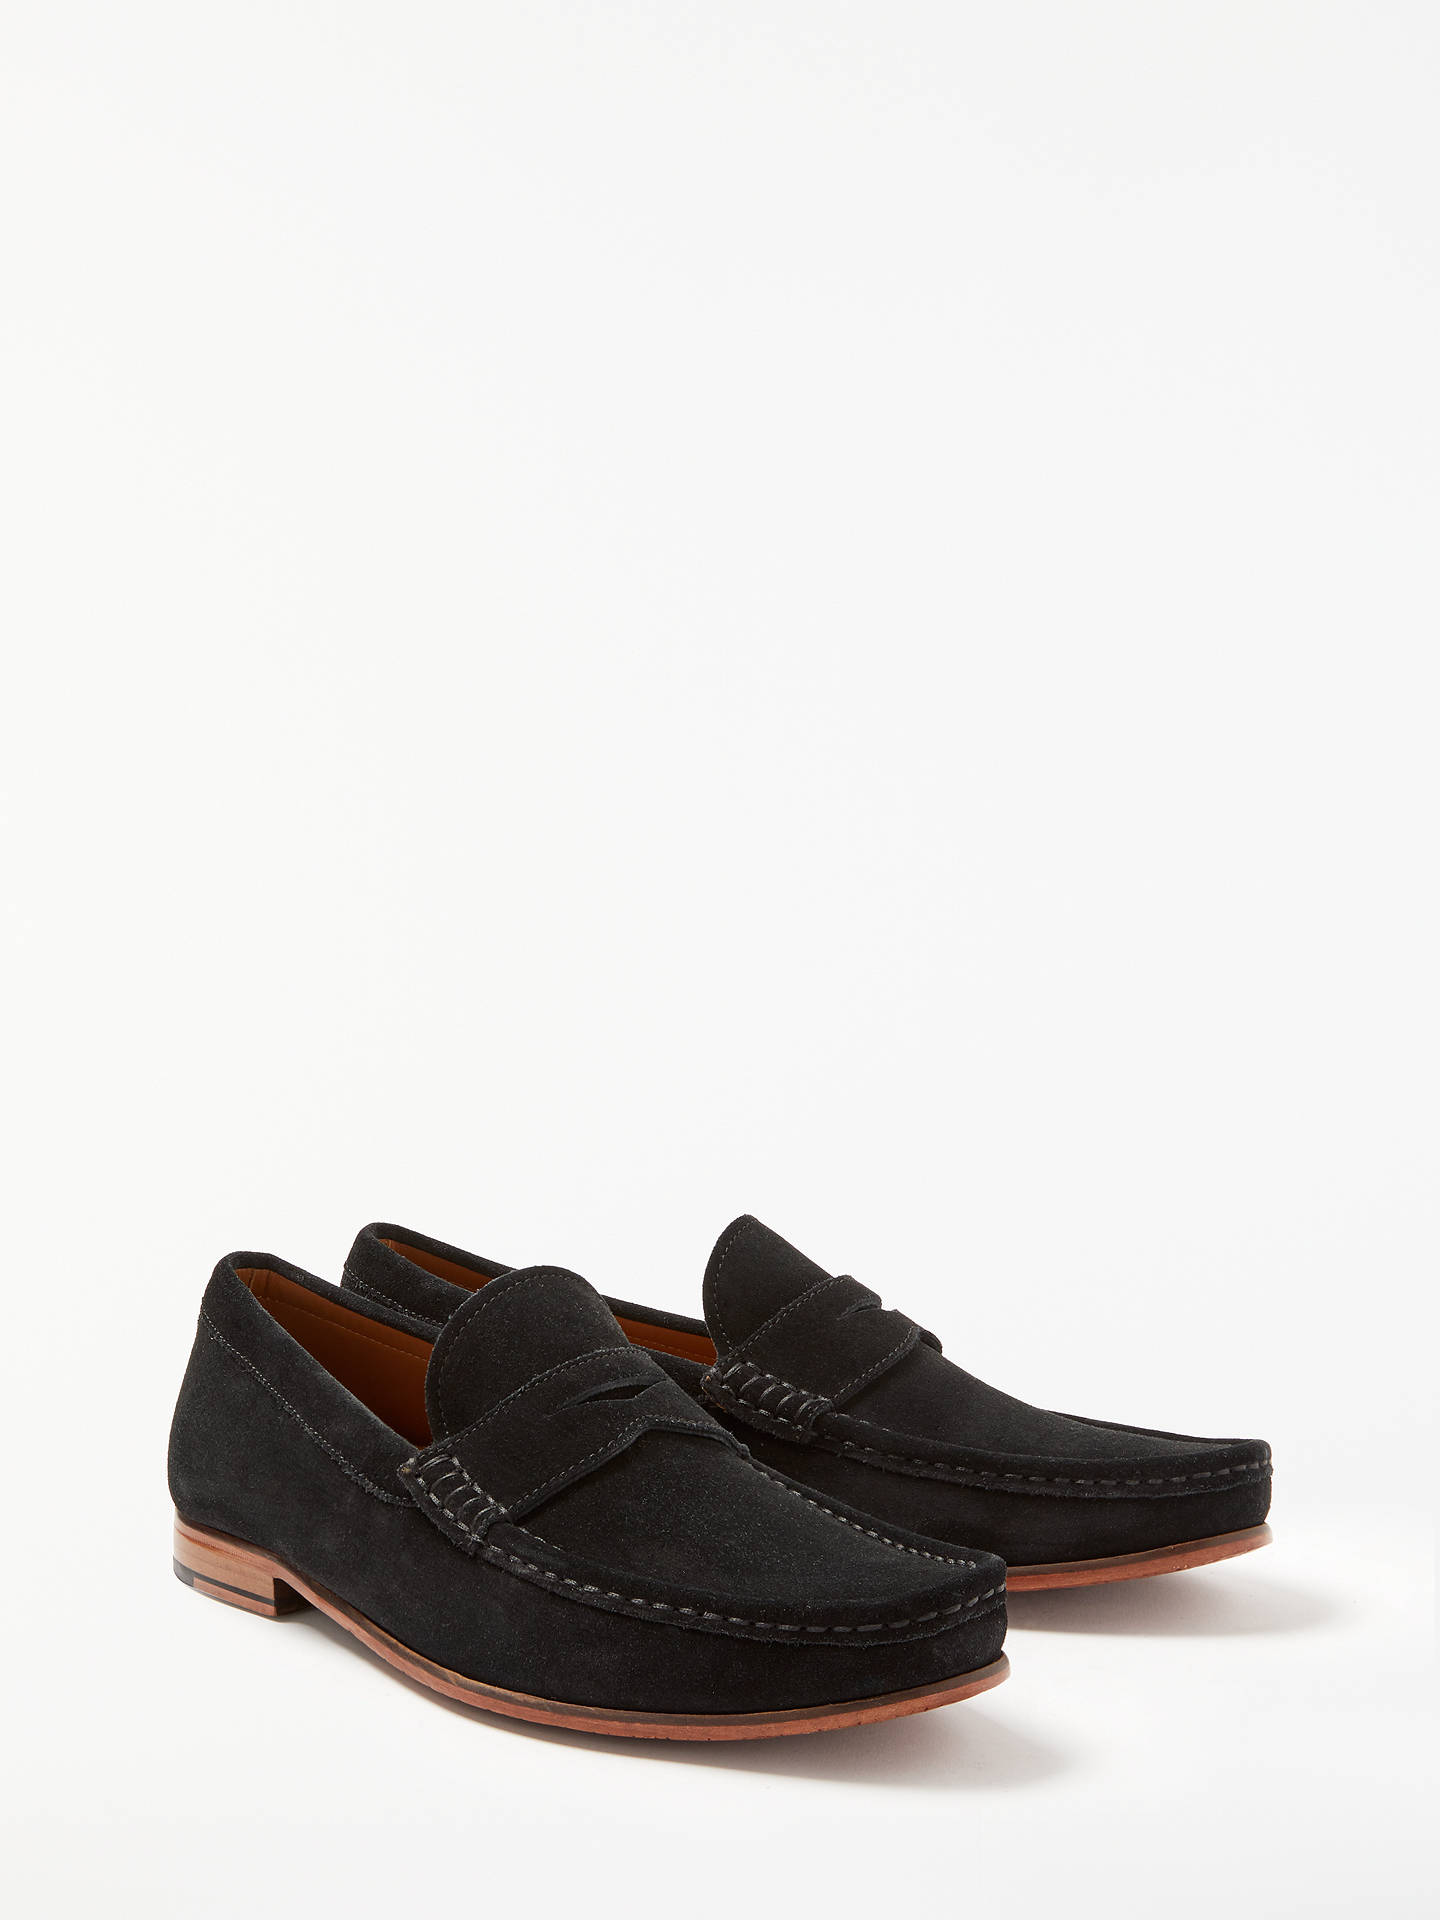 BuyJohn Lewis & Partners Louis Suede Penny Loafers, Black, 6 Online at johnlewis.com